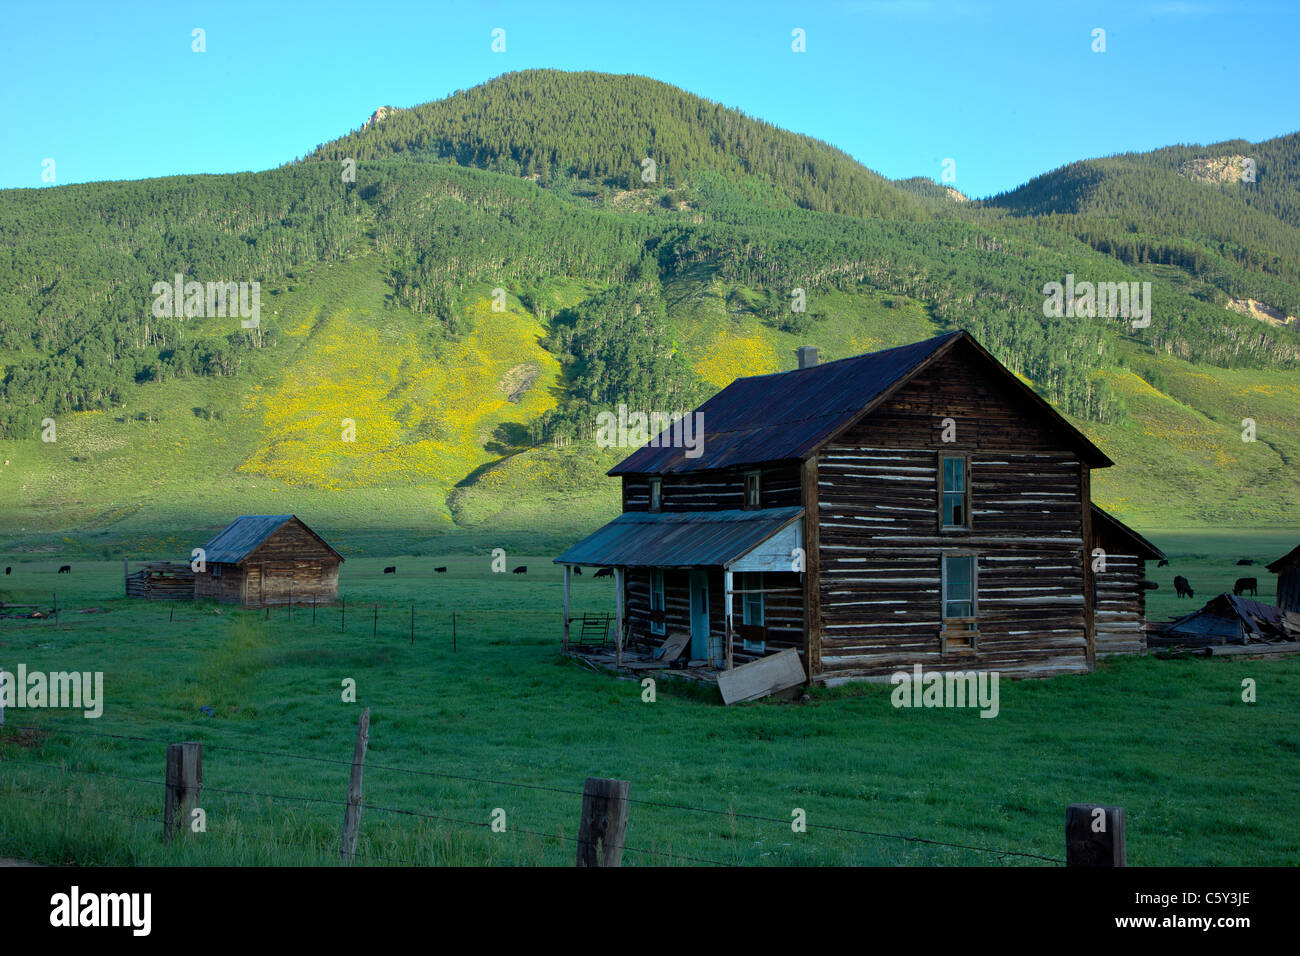 Old weathered farmhouse on Cold Spring Ranch near Crested Butte, Colorado, USA - Stock Image